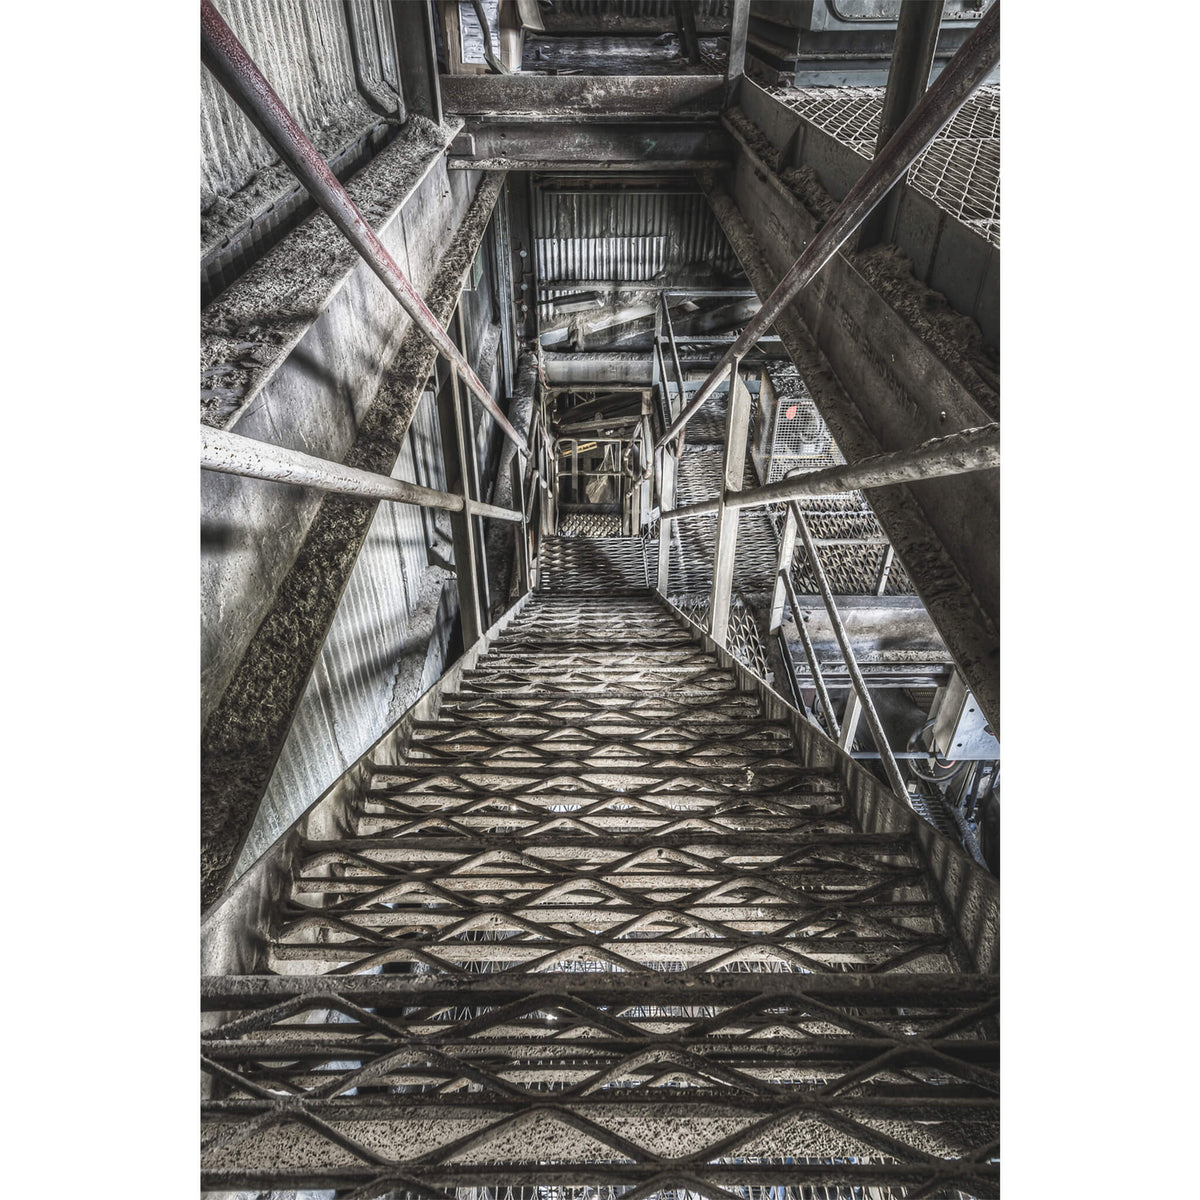 Stairs | Kandos Cement Works